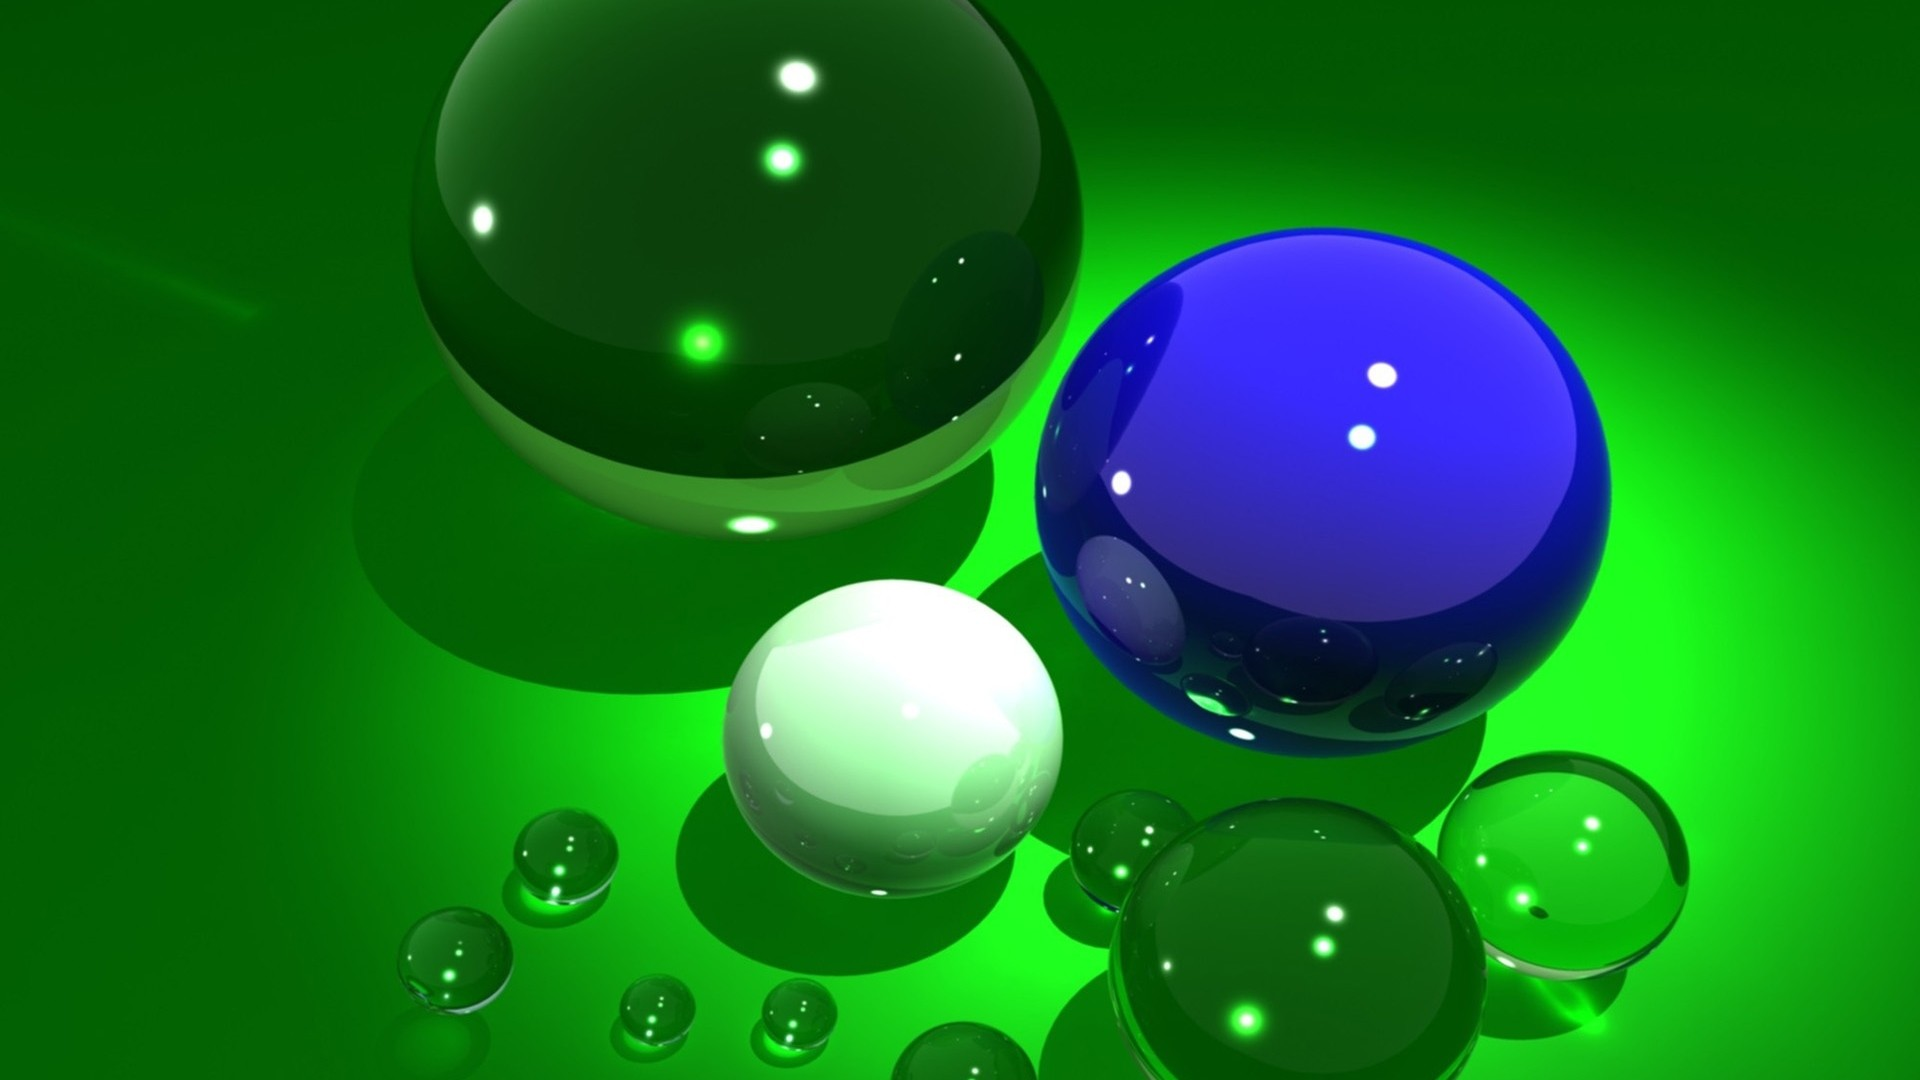 Glass 3D HD Wallpapers 1080P – Bing images